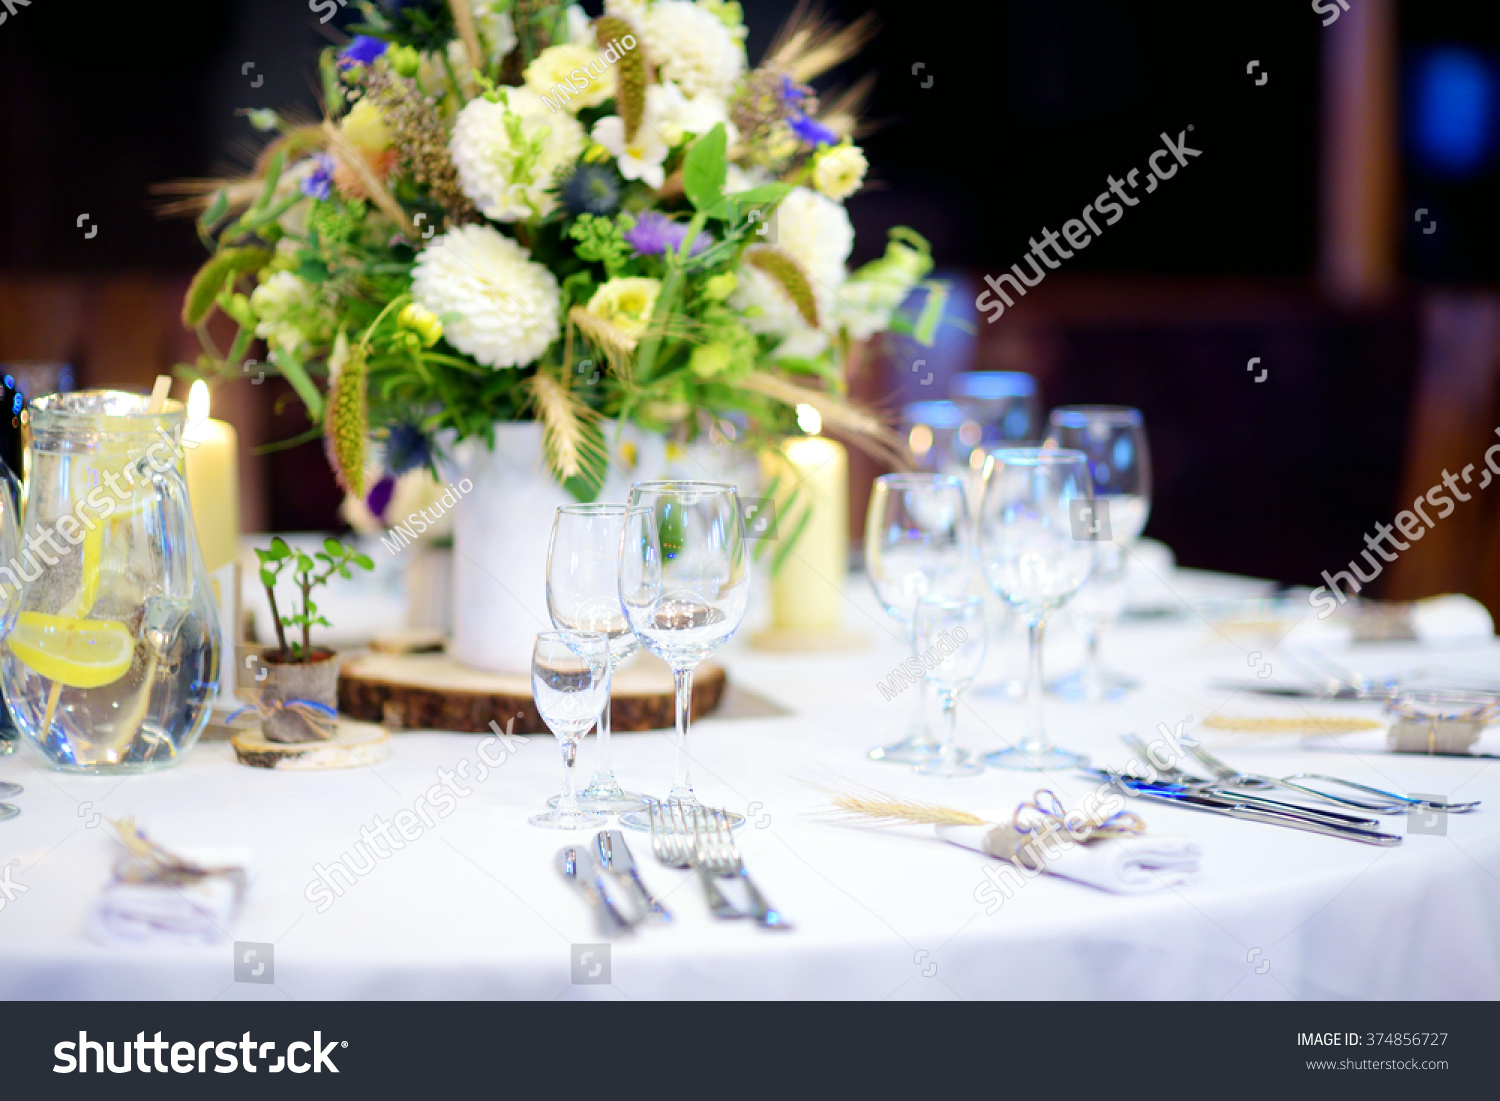 How beautiful to set the table